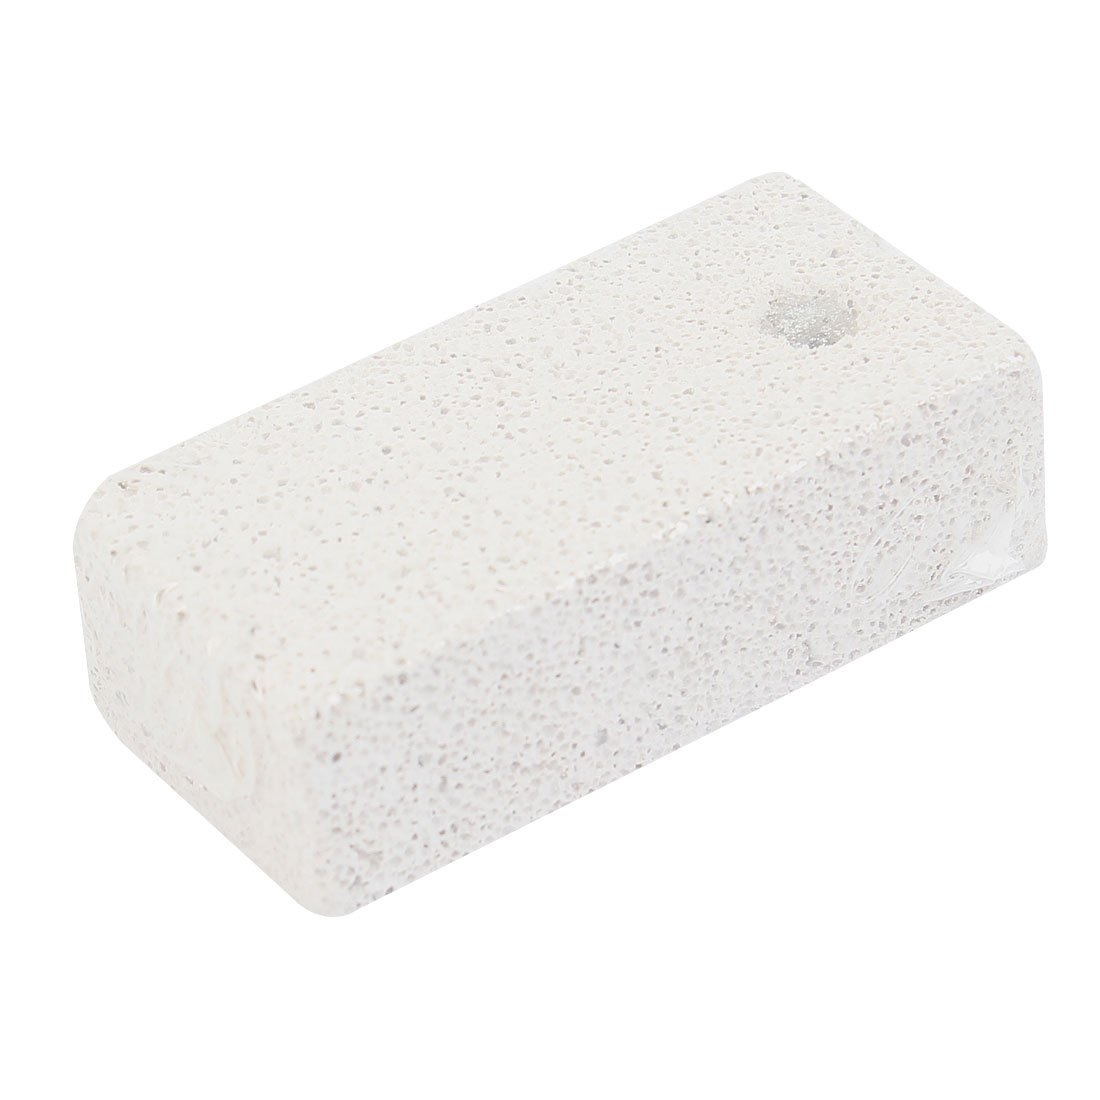 Hot Selling! Rectangle Shape Hamster Cleaning Teeth Mineral Stone White